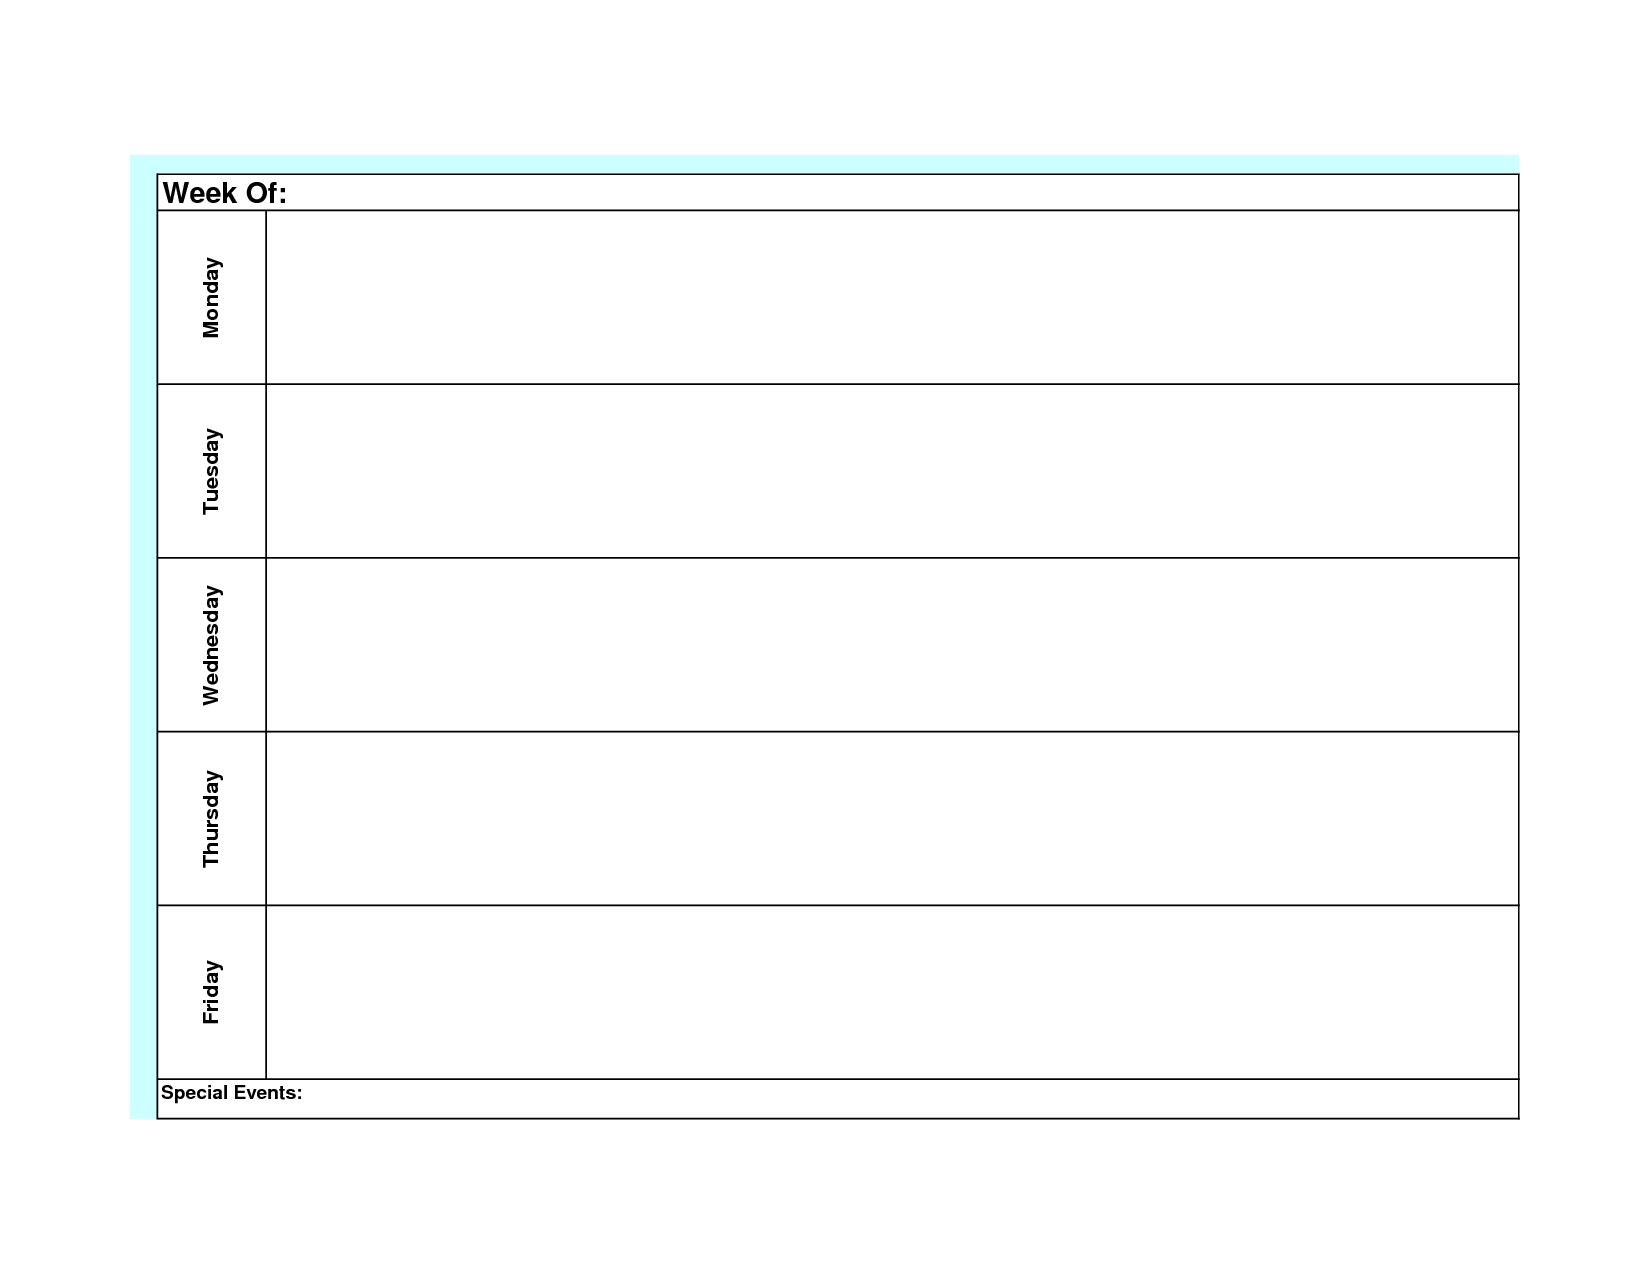 Blank Weekly Calendar Monday Through Friday Template Planner To | Smorad with Weekly Blank Calendar Monday Through Friday